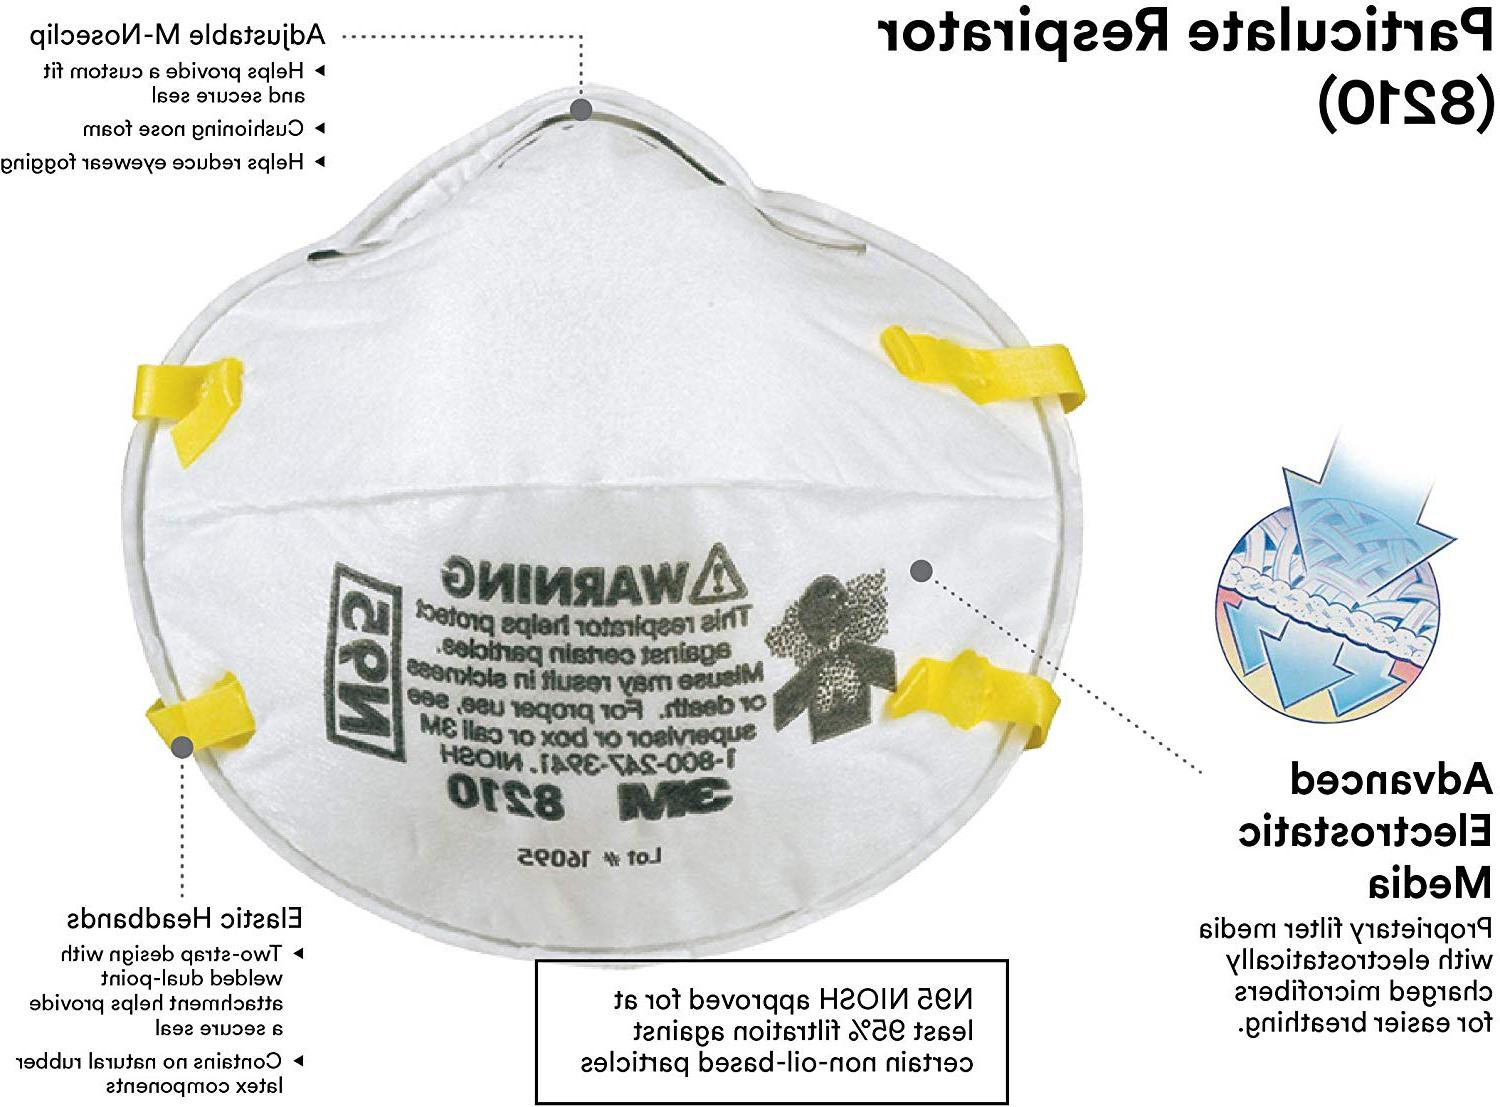 8210 n95 particulate respirator mask lot of